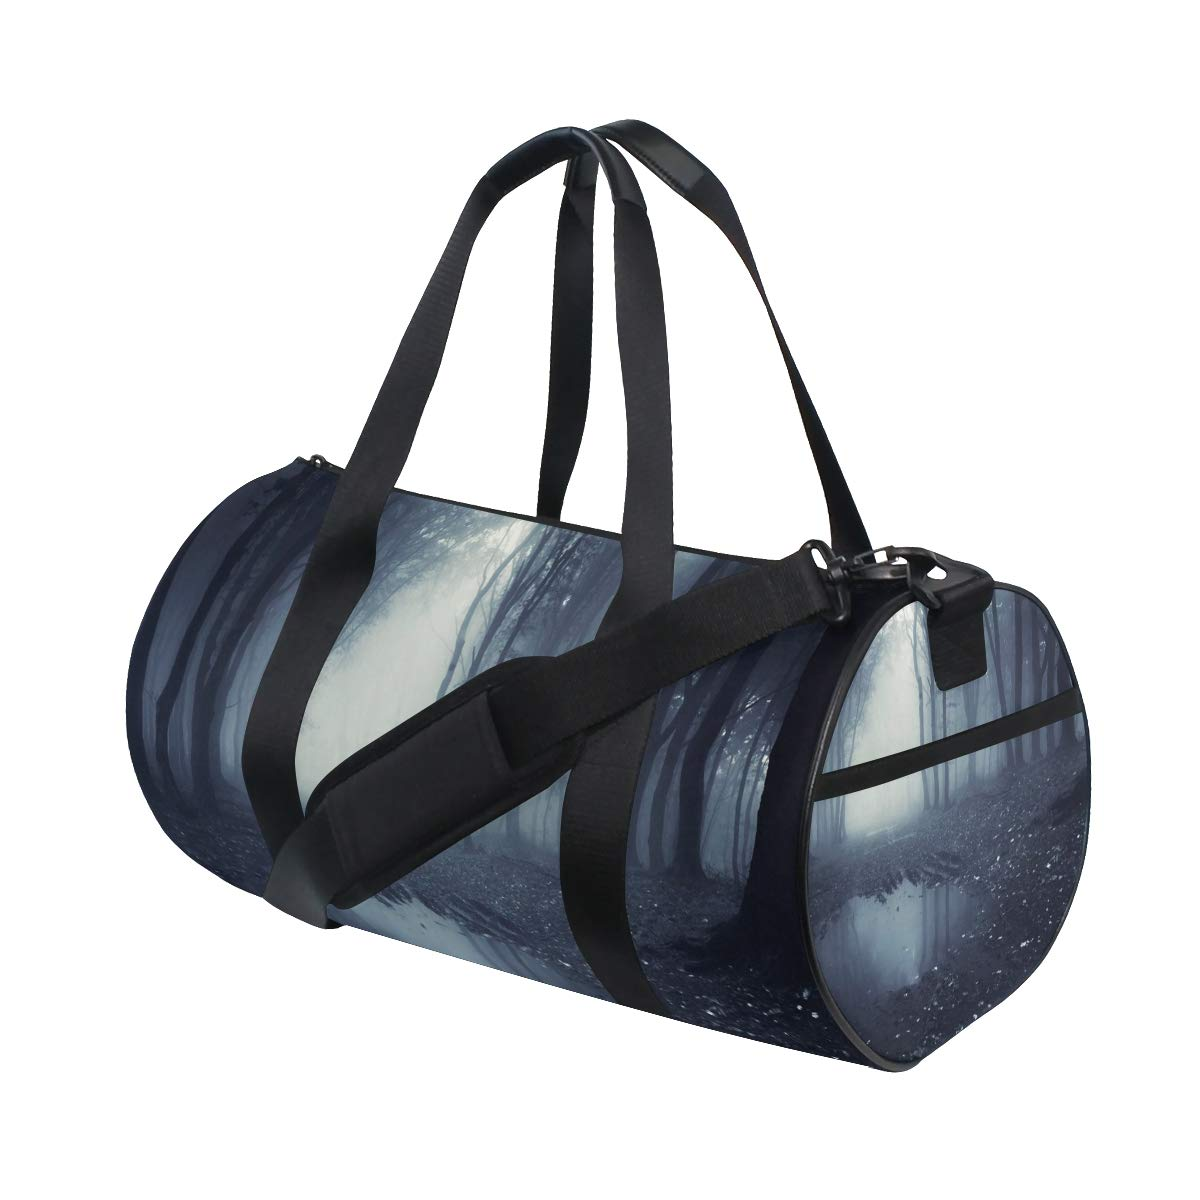 Sports Gym Bag Travel Duffel Bag with Pockets Luggage & Travel Gear Shoulder Strap Fitness Bag by EVERUI (Image #1)